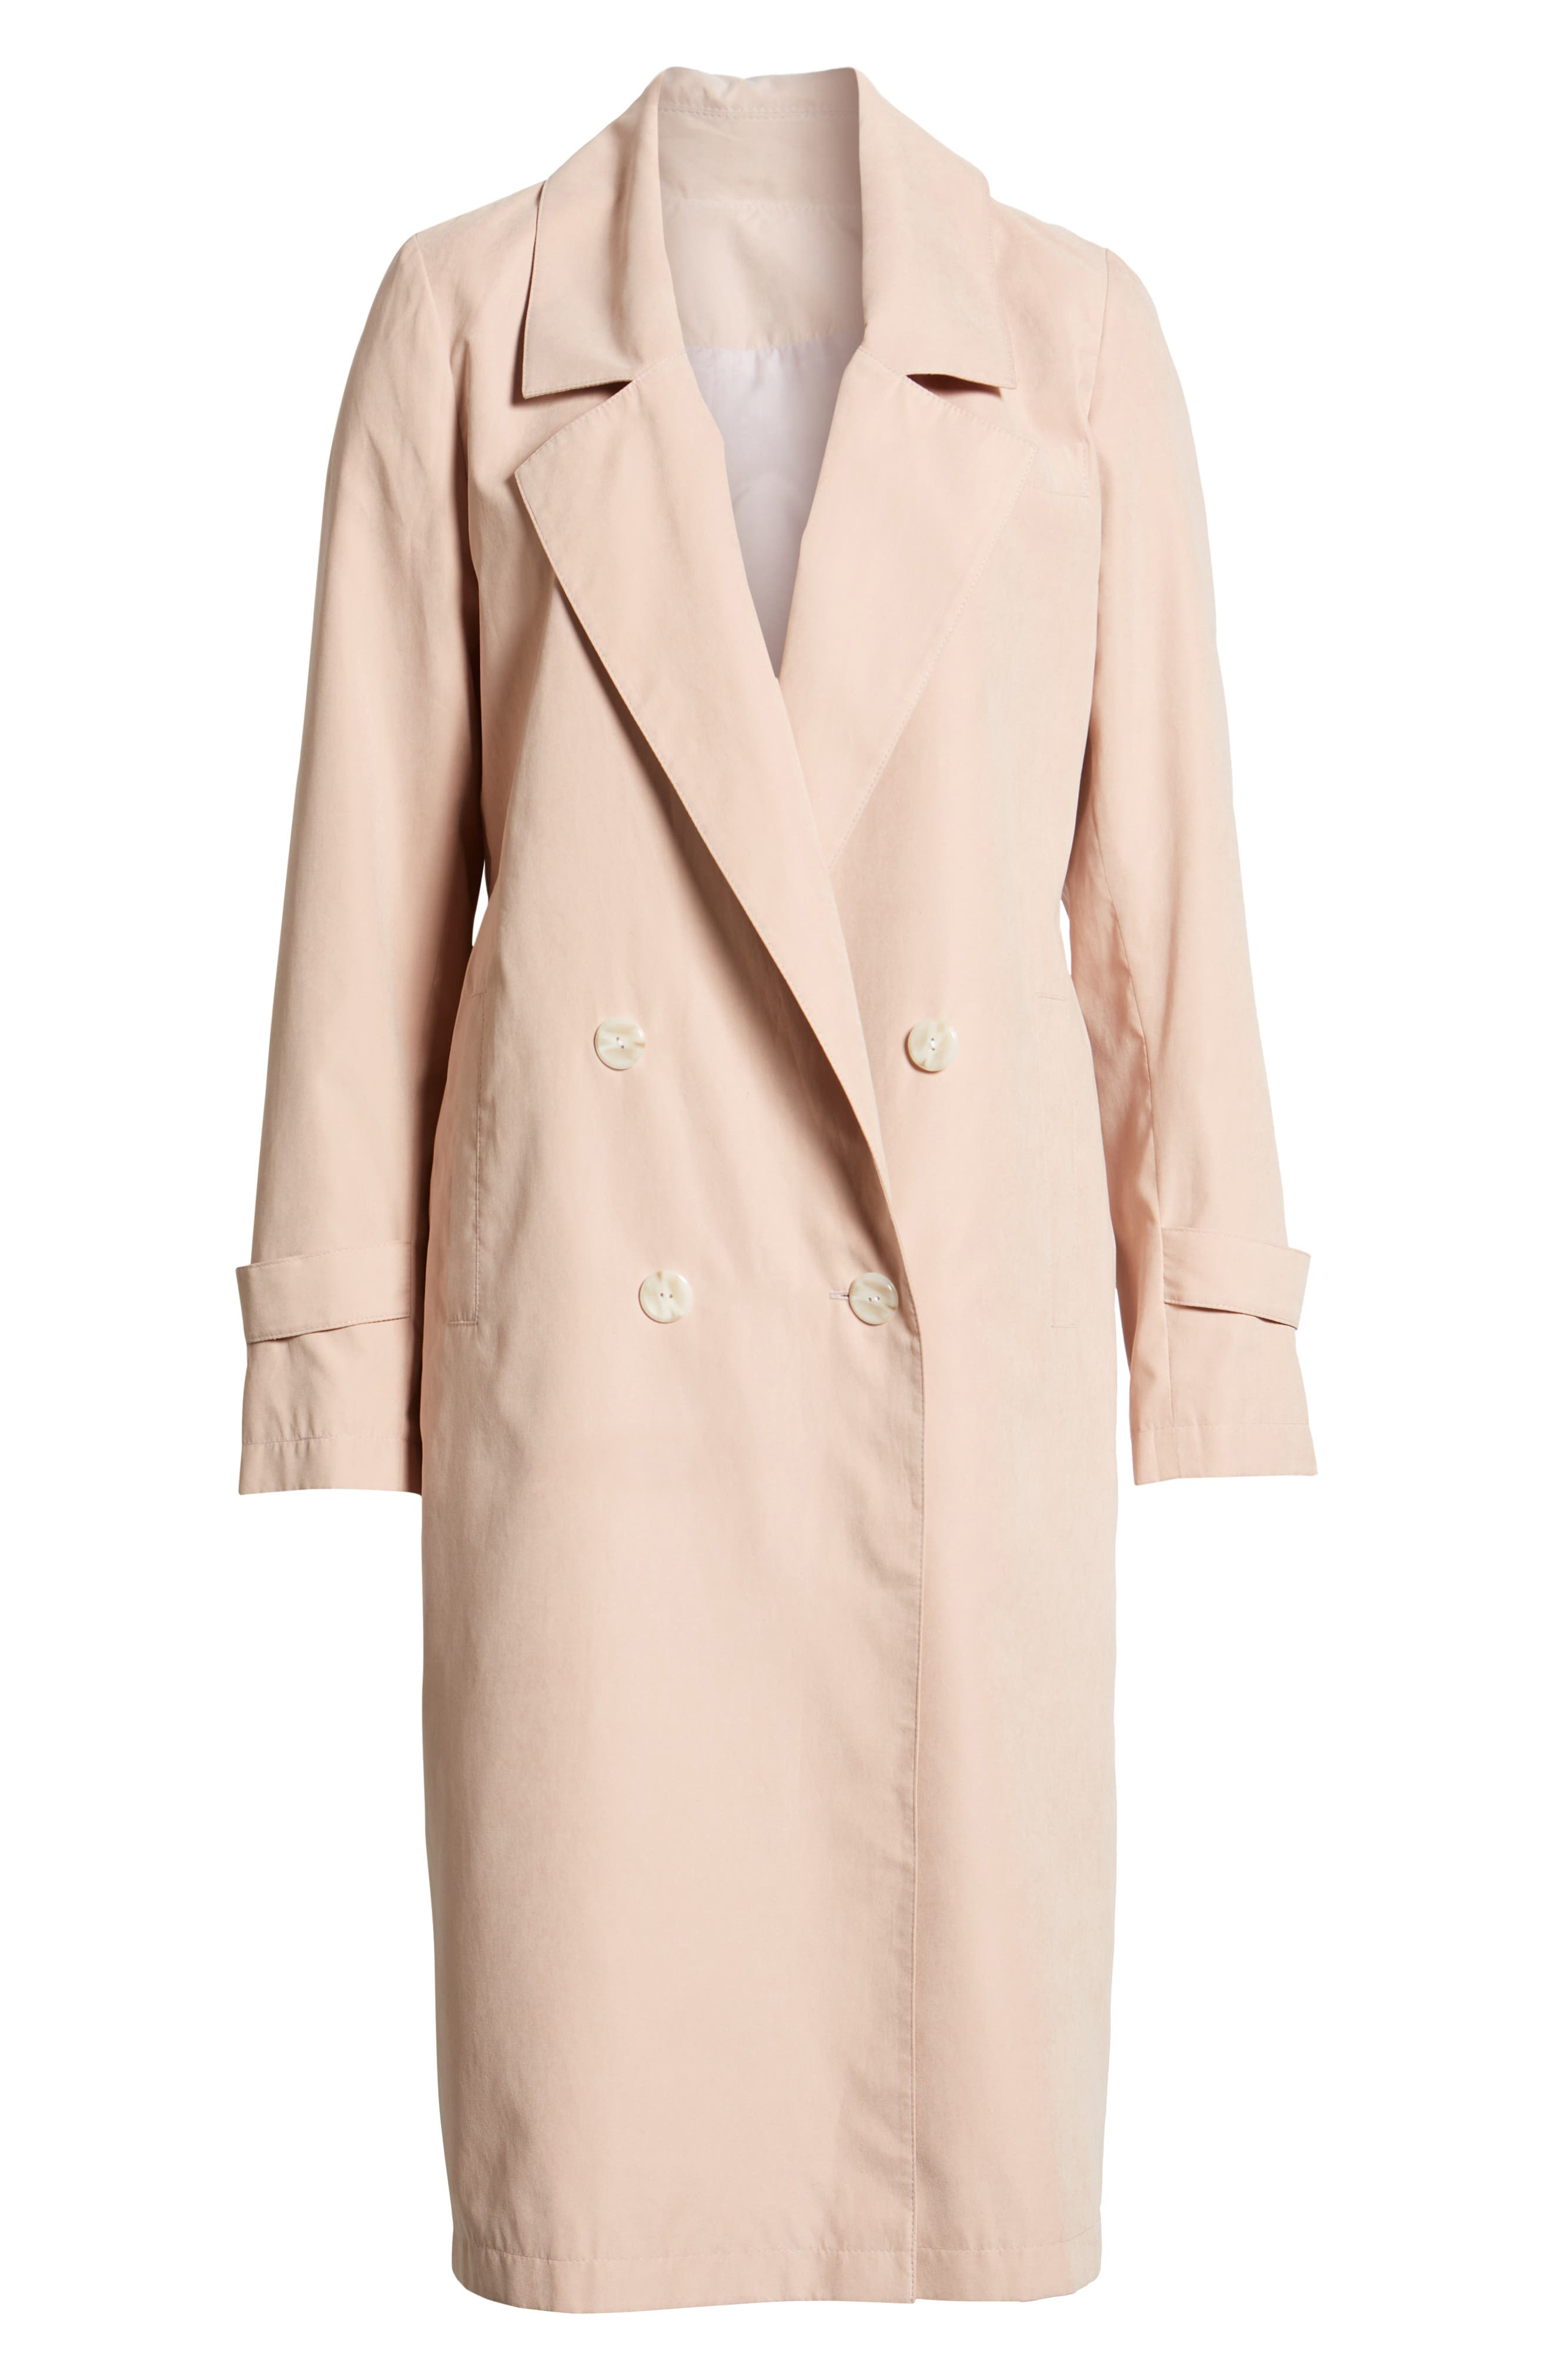 Double Breasted Trench Coat,                             Alternate thumbnail 7, color,                             Blush